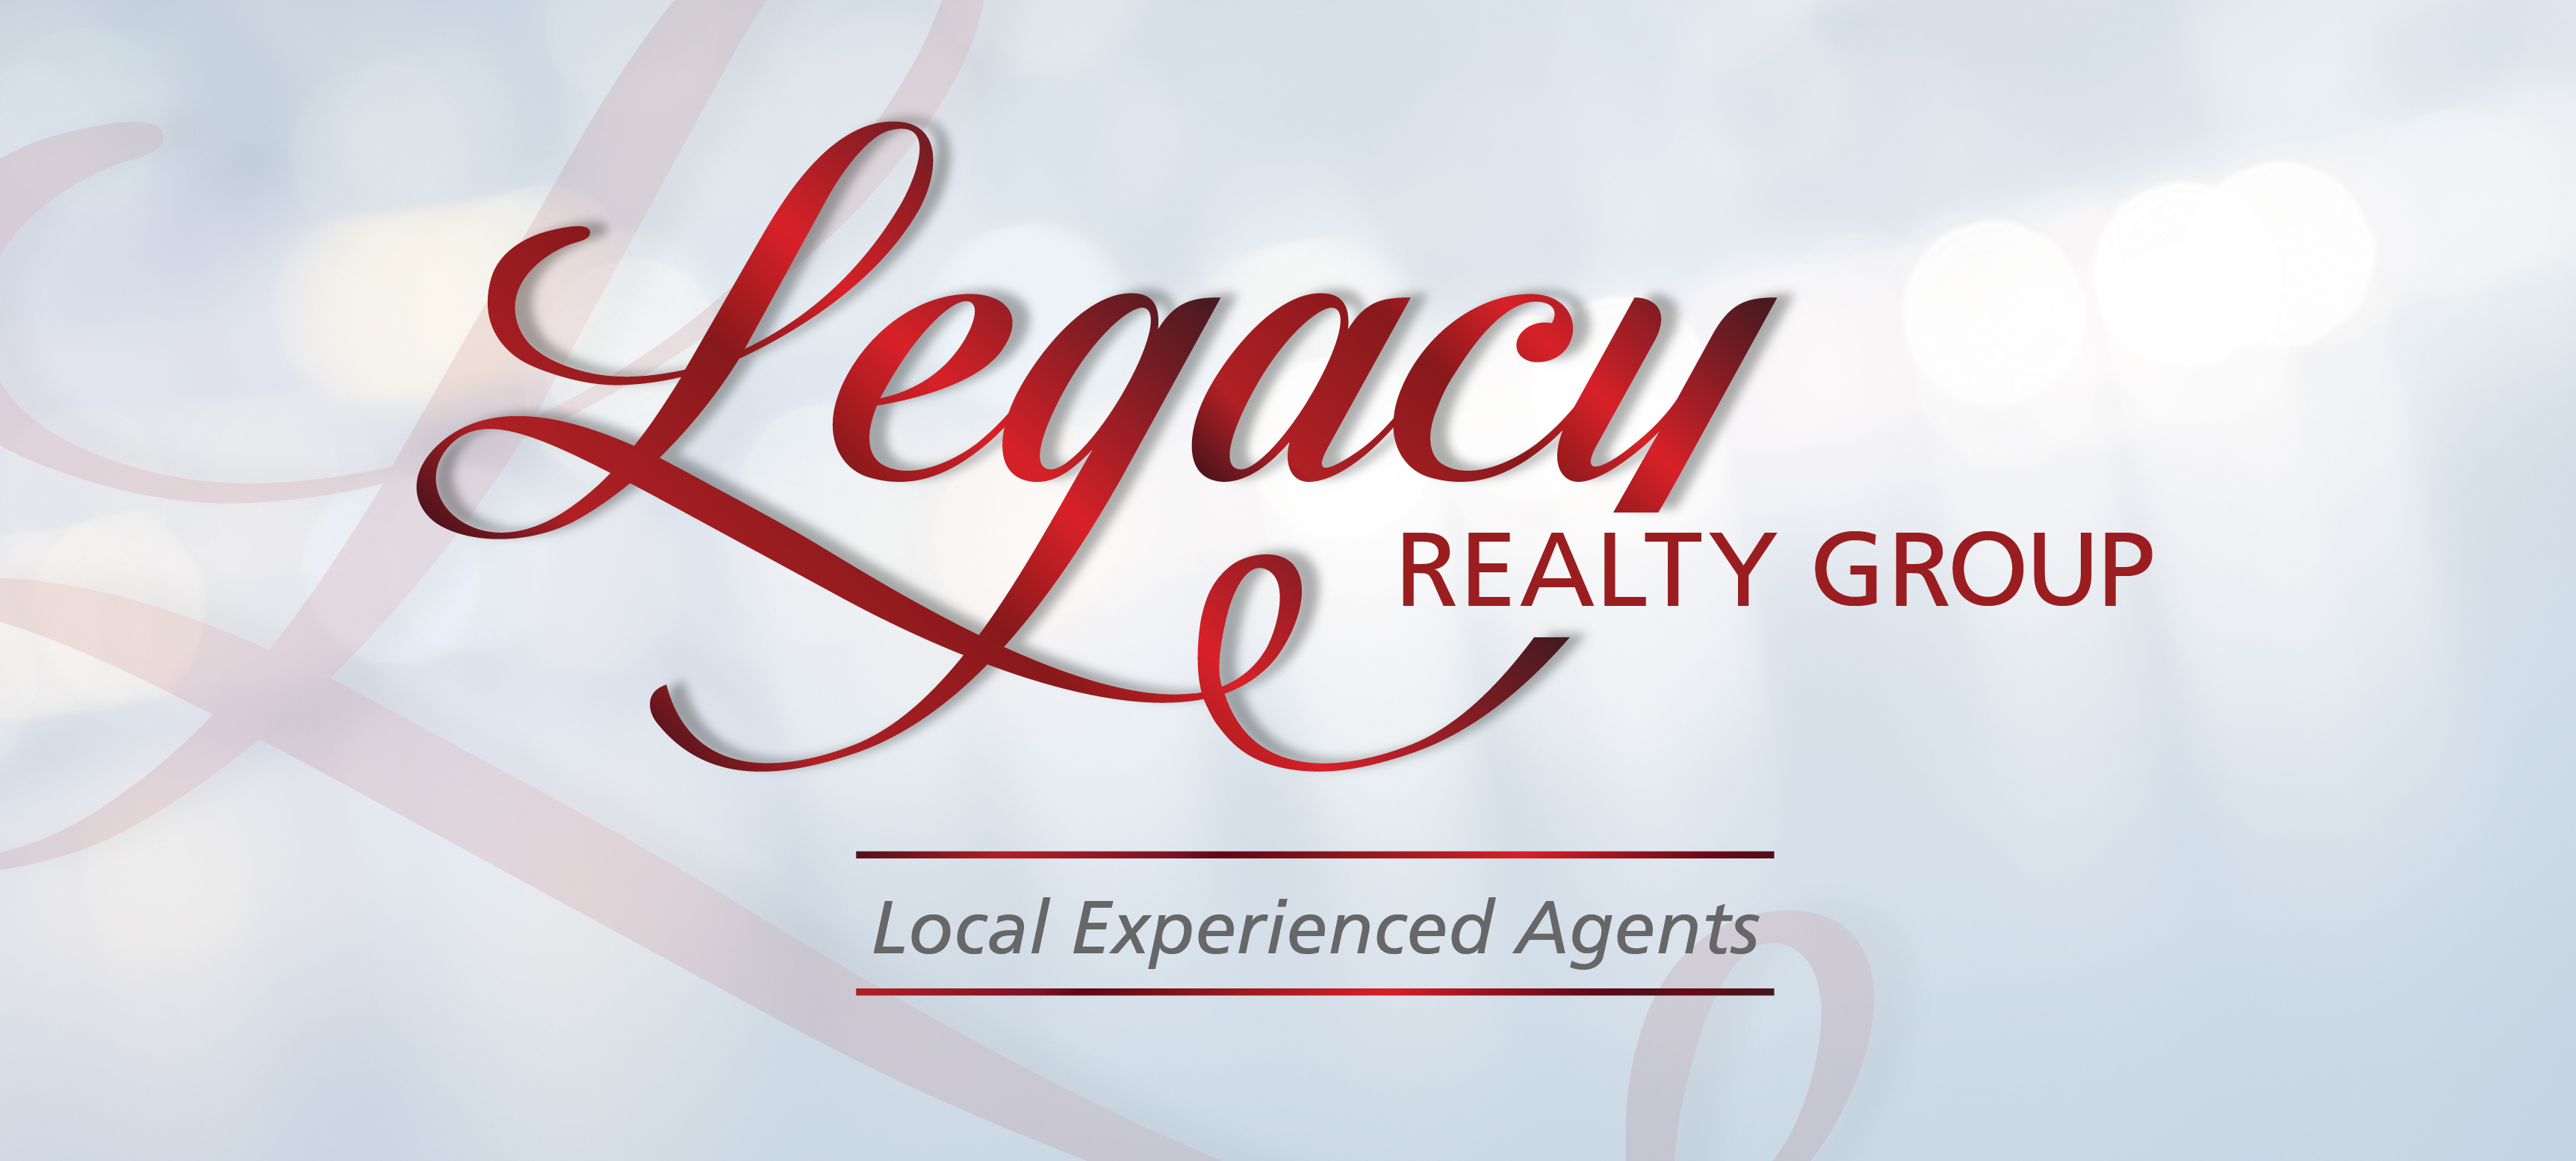 Legacy Realty Group reviews | Real Estate Services at 130 Chieftain Dr - Waxahachie TX